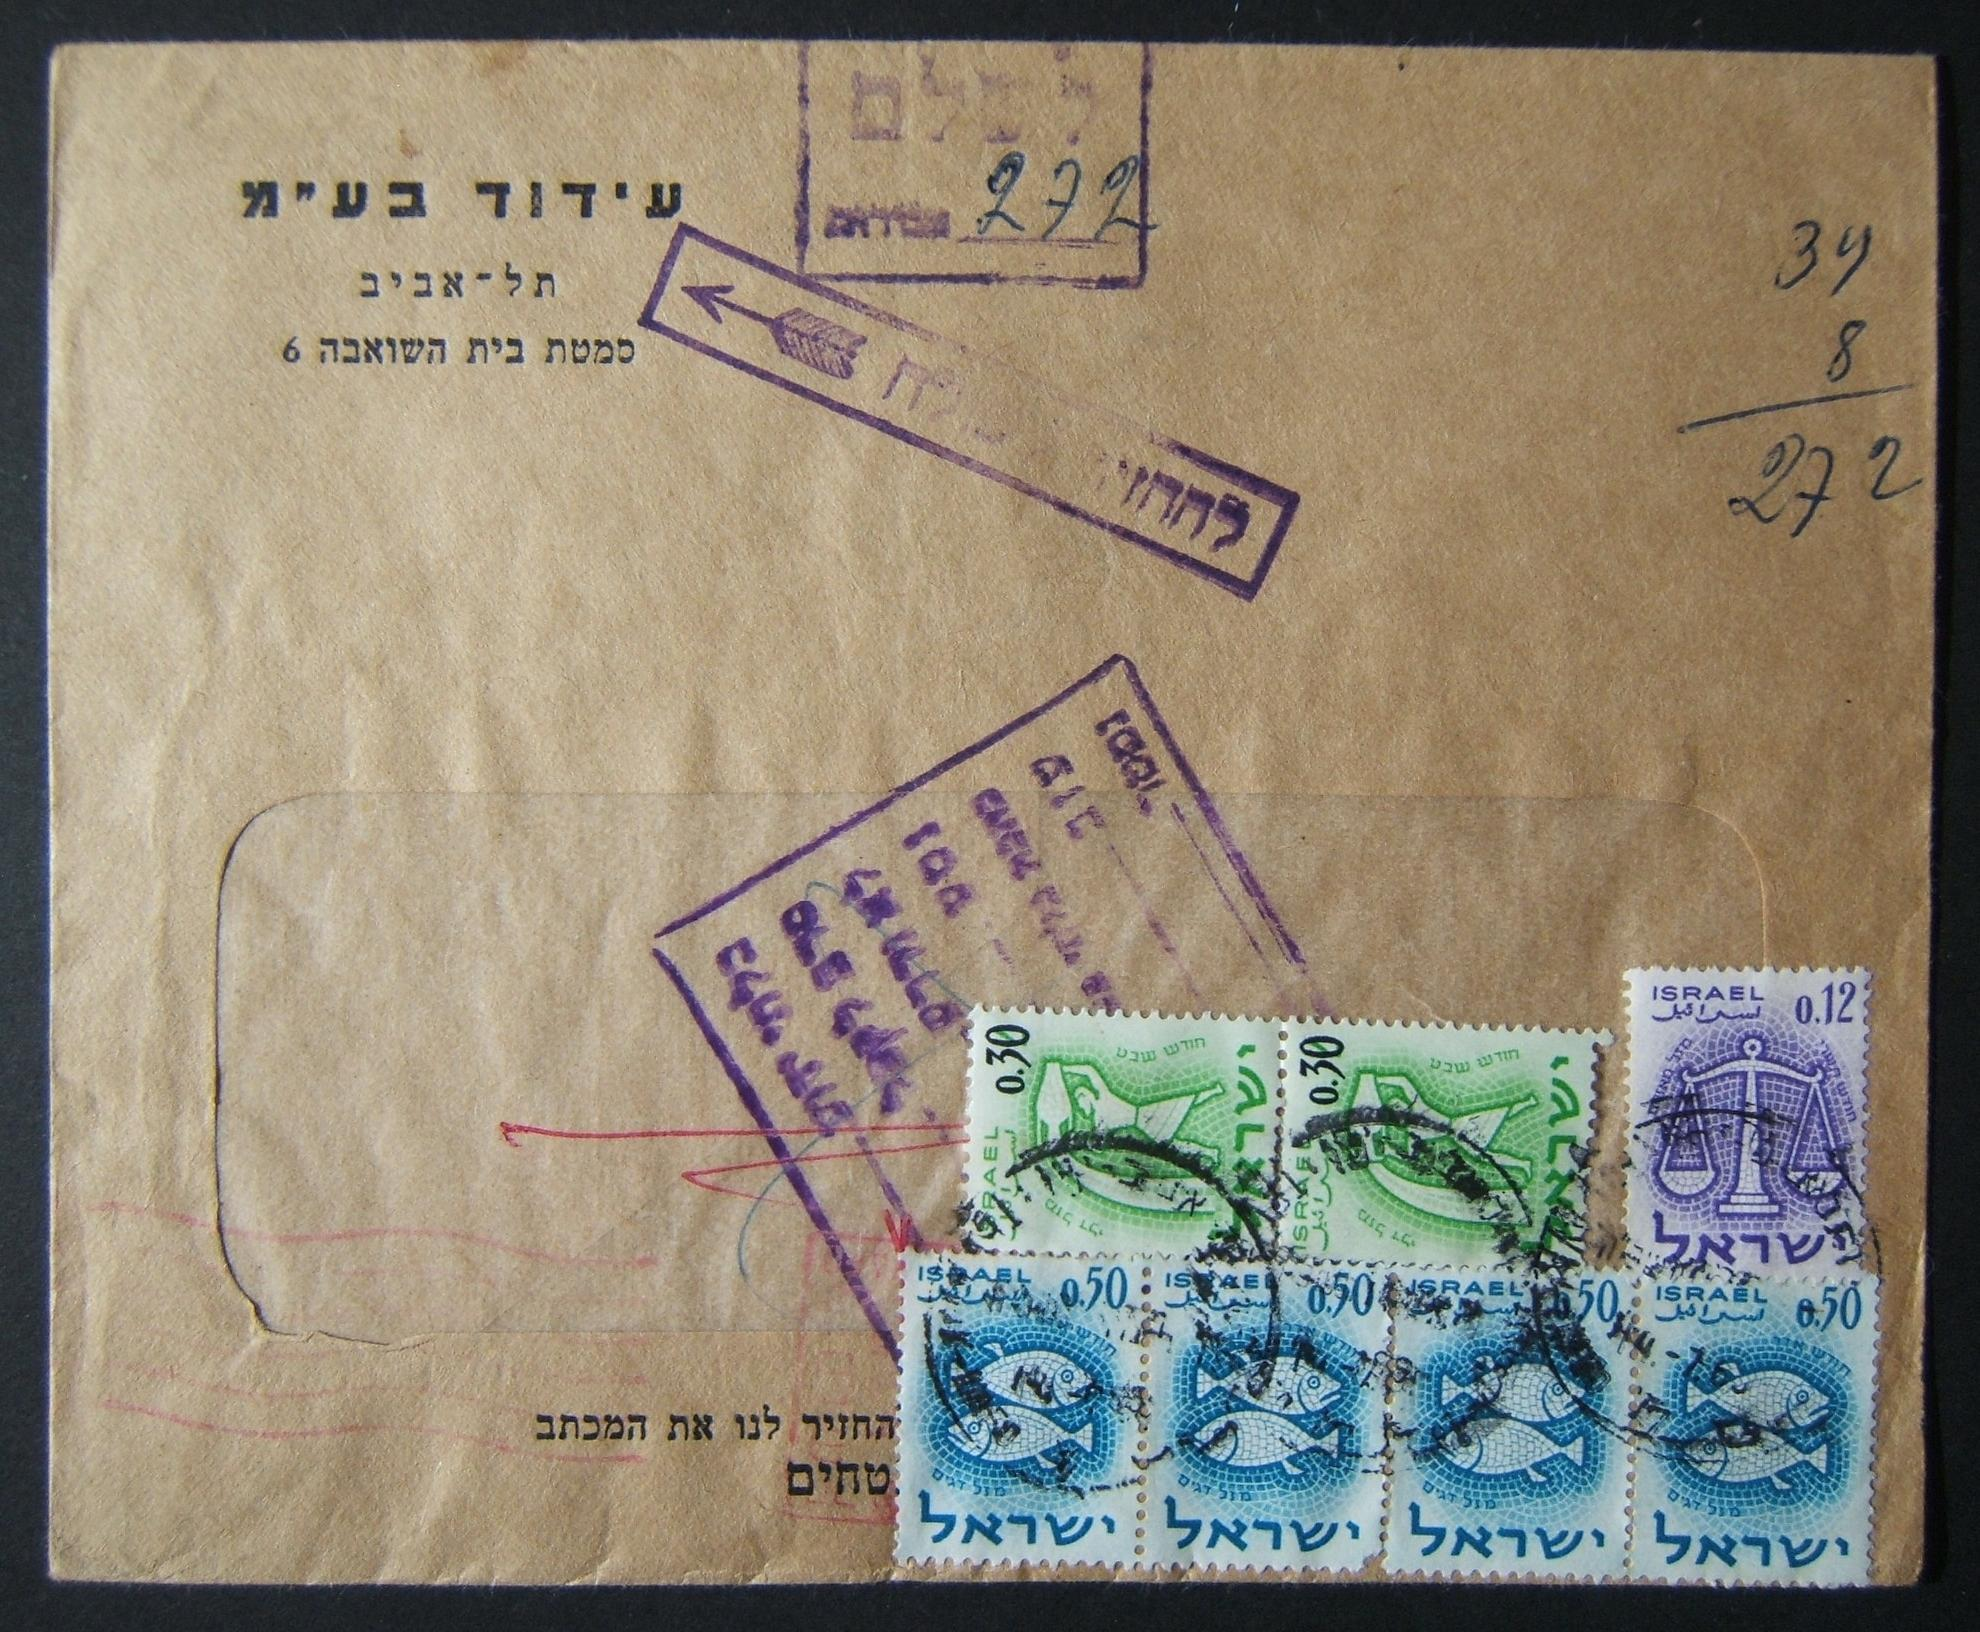 1965 domestic 'top of the pile' taxed franking: July 1965 printed matter commercial cover ex TLV branch of Idud Ltd. franked by machine prepayment at the DO-11 period 8 Ag PM rate